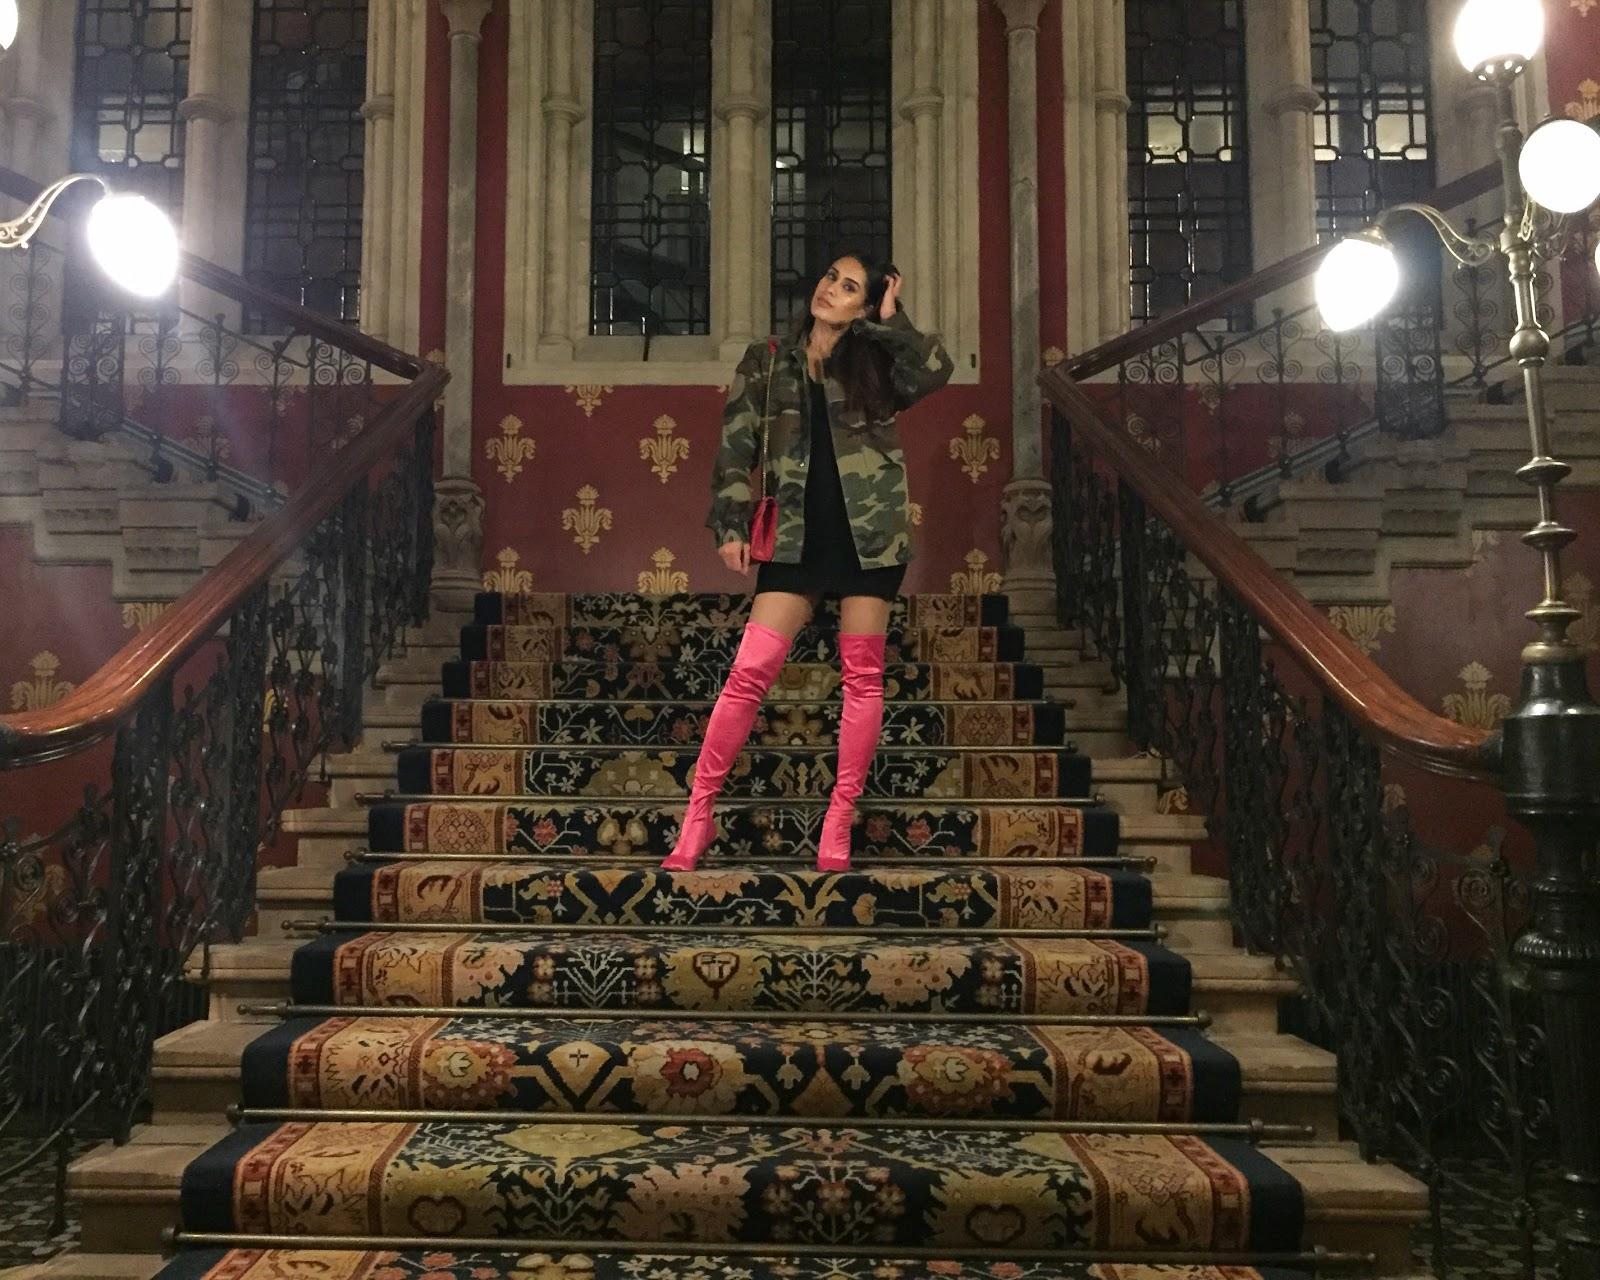 Fashion blogger Reena Rai on the Spice Girls staircase at St Pancras Renaissance hotel